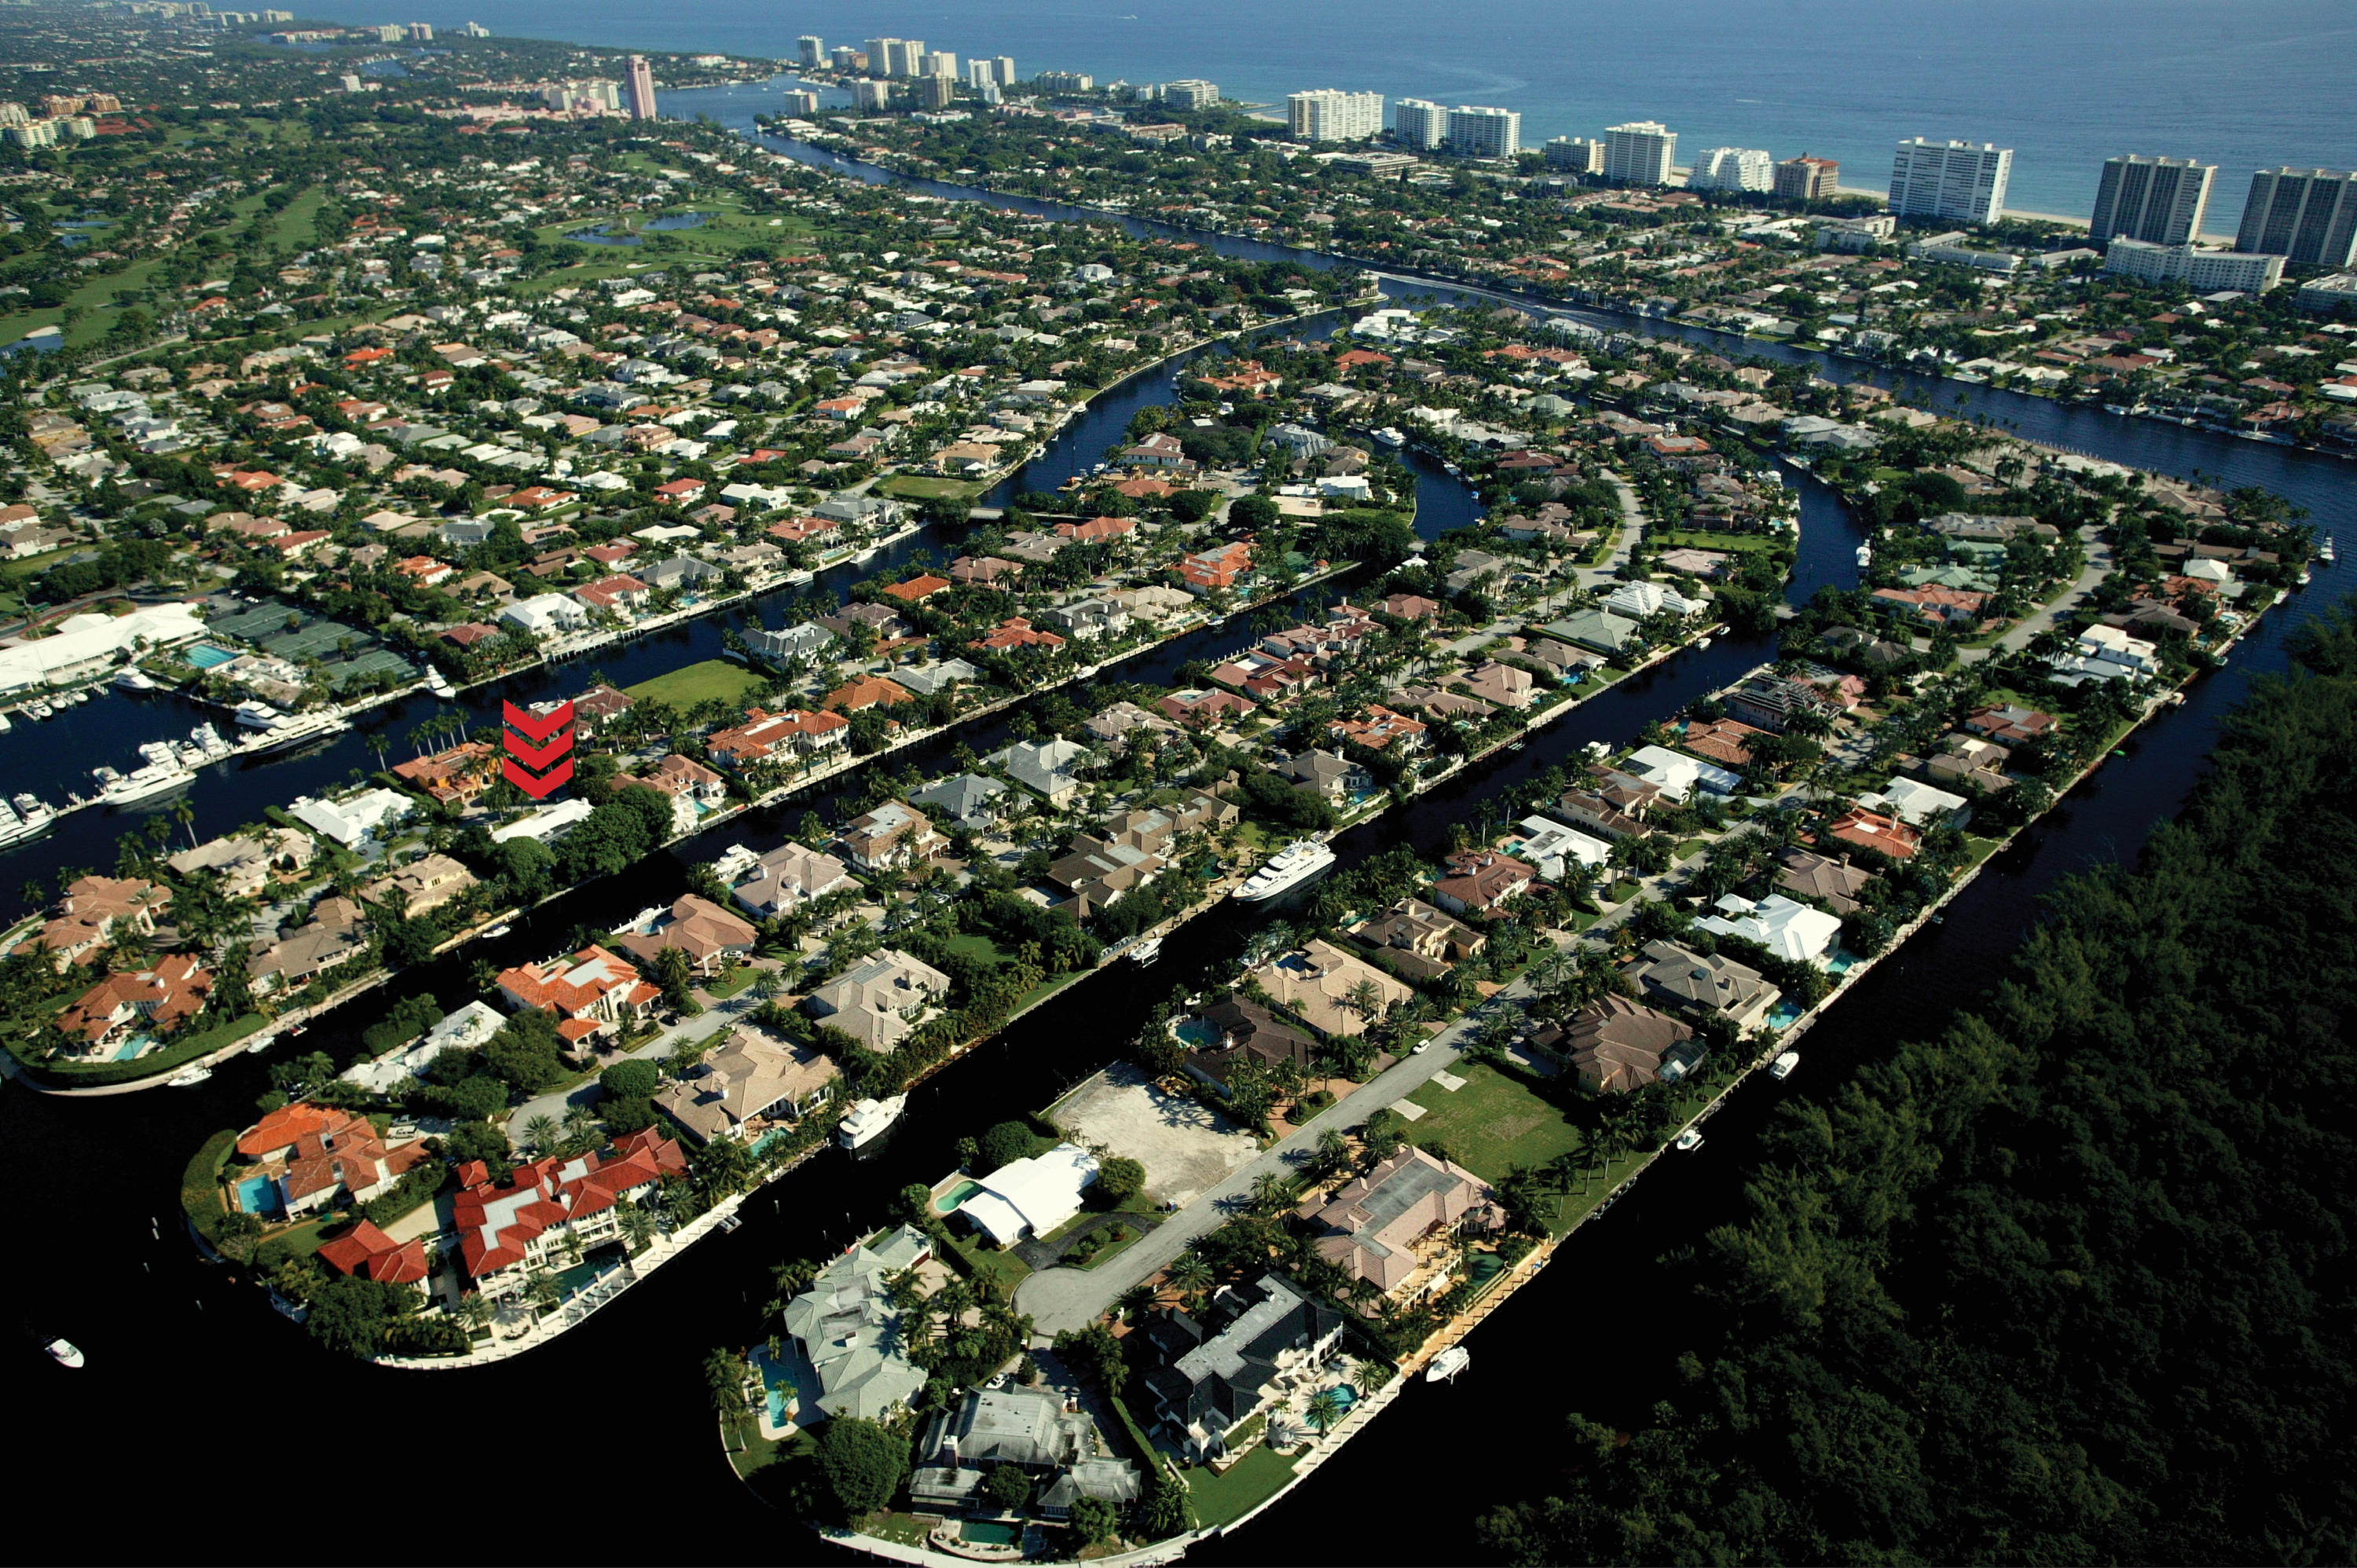 Home for sale in ROYAL PALM YACHT & COUNTRY CLUB SUB IN PB 26 PGS 57 TO 62 INC & AMENDED PLAT IN PB Boca Raton Florida